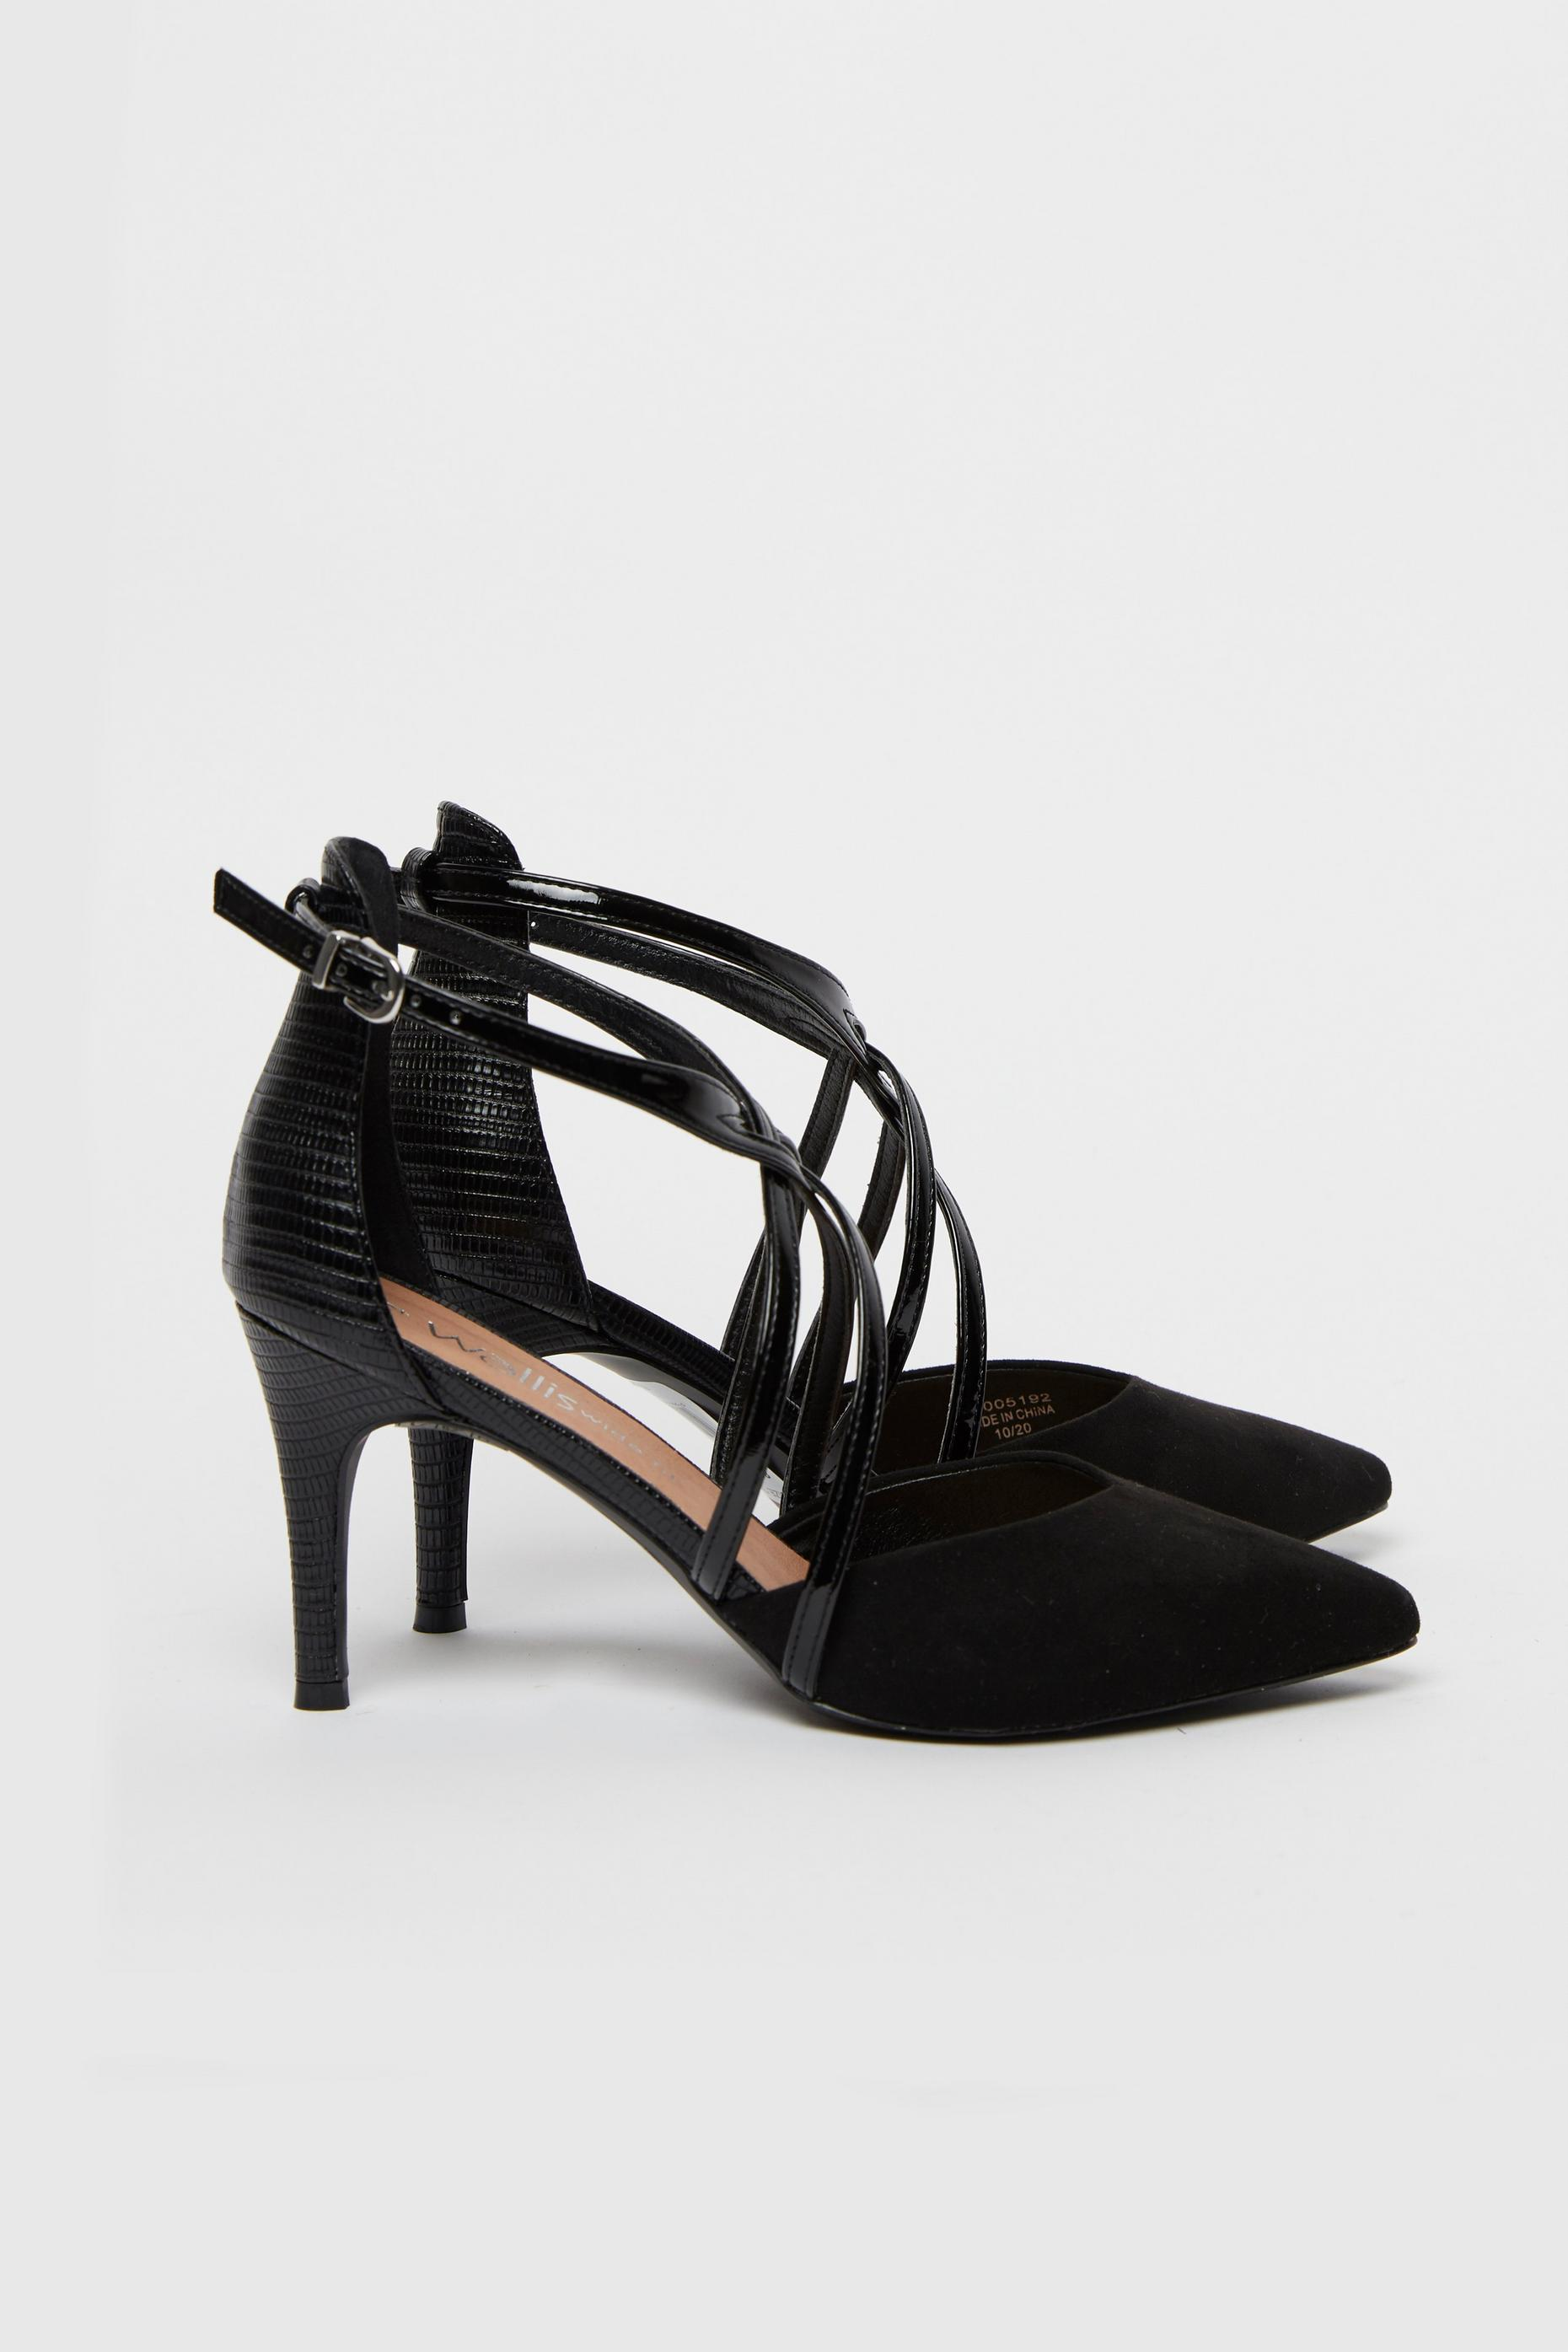 WIDE FIT Black Strappy Pointed Heel